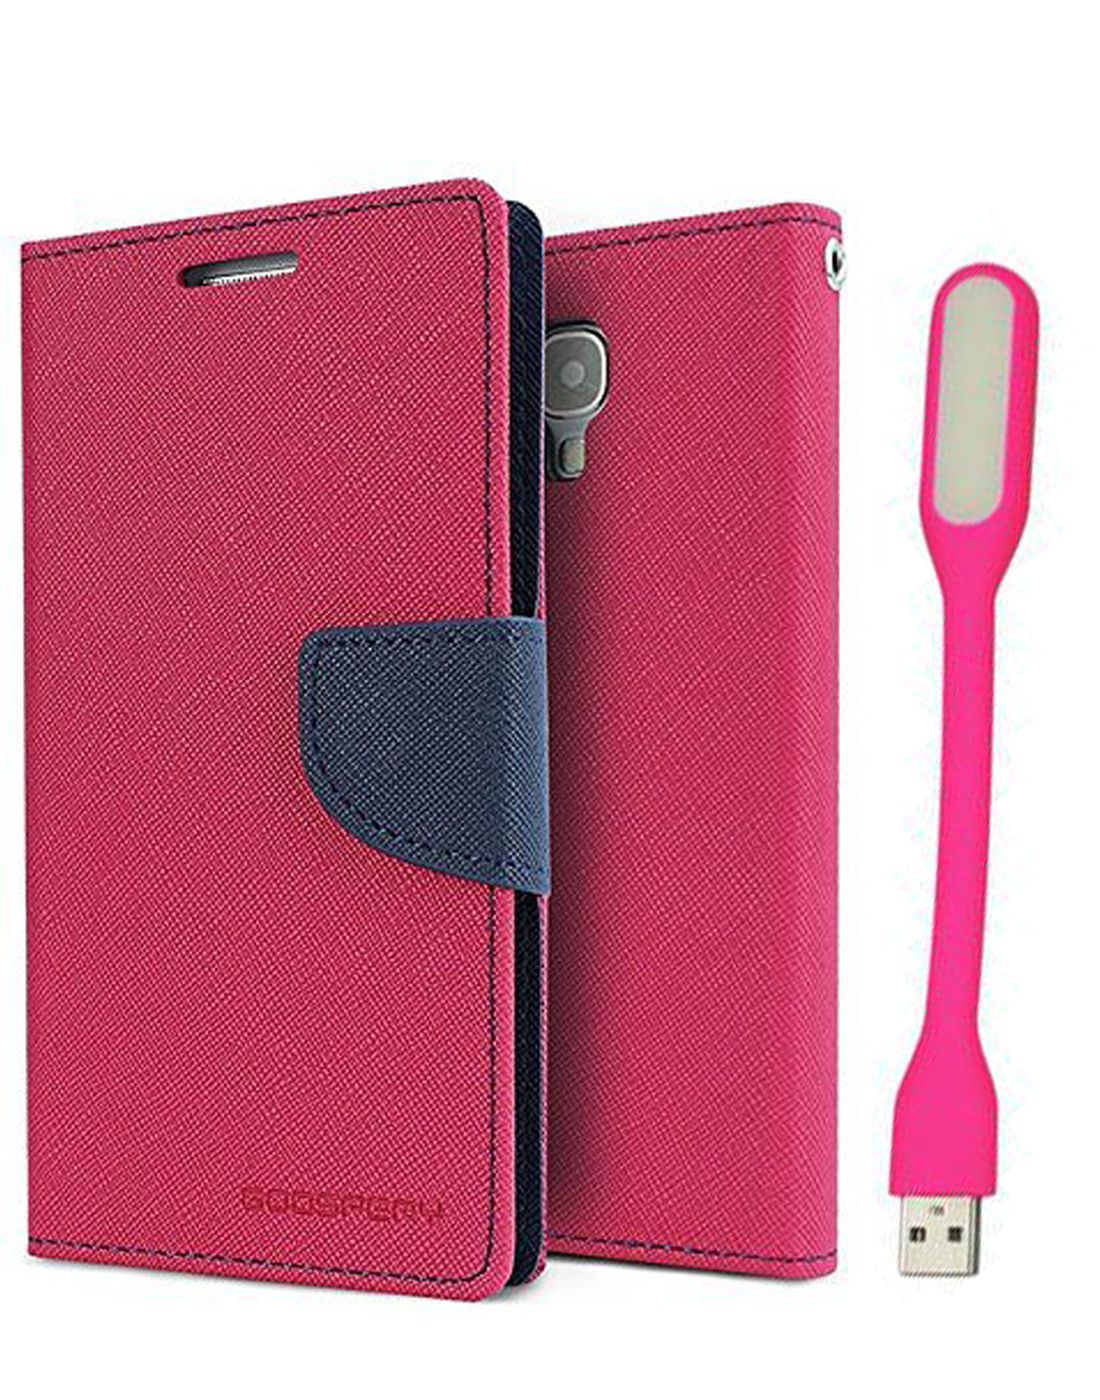 Wallet Flip Case Back Cover For Samsung J5 - (Pink) + Flexible Mini LED Stick Lamp Light By Style Crome